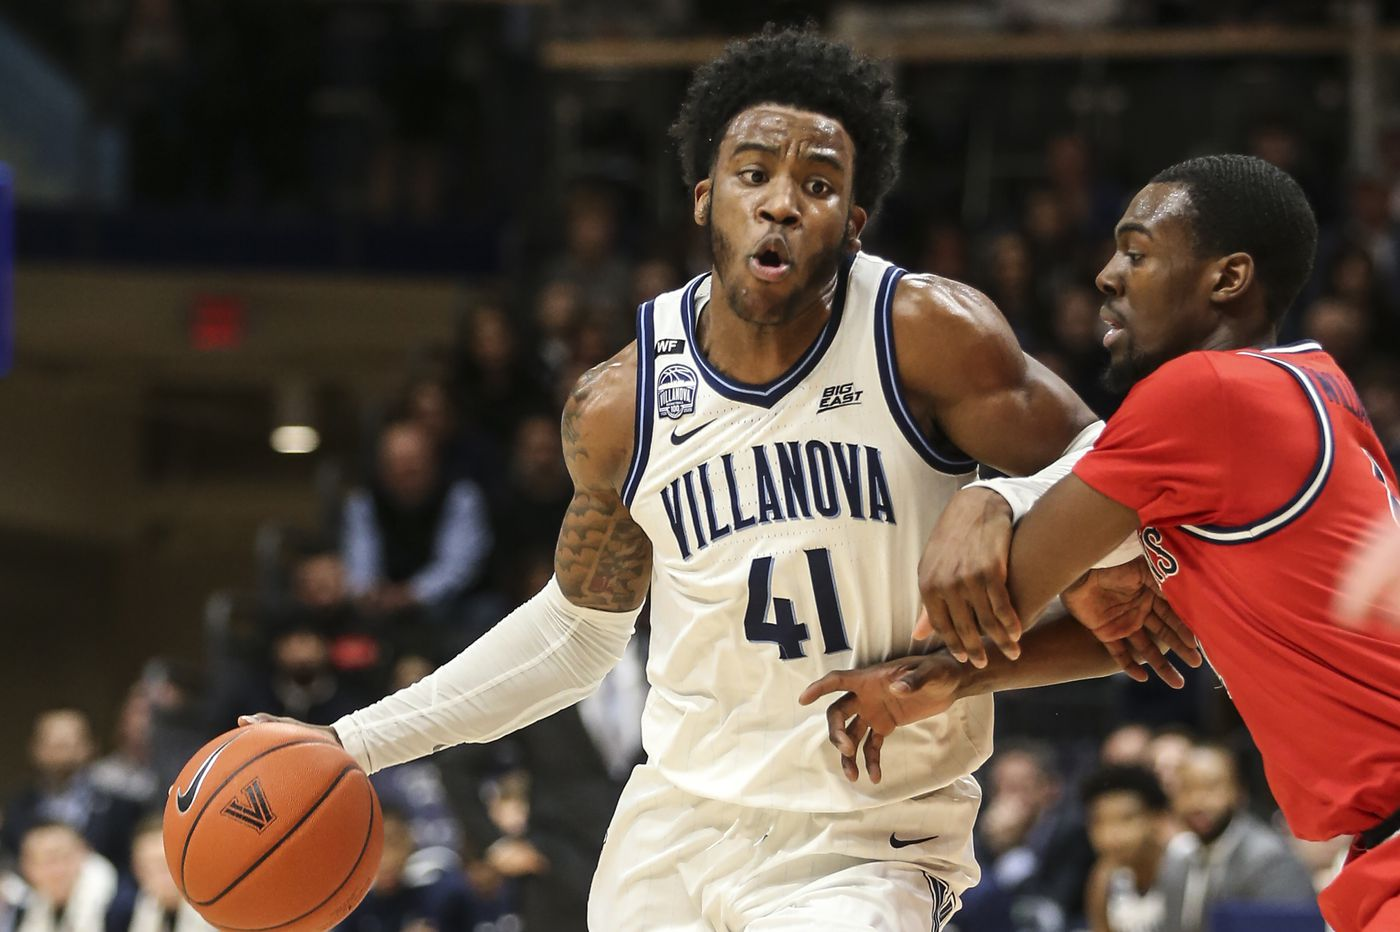 Villanova sophomore star Saddiq Bey guided in basketball and in life by his mother